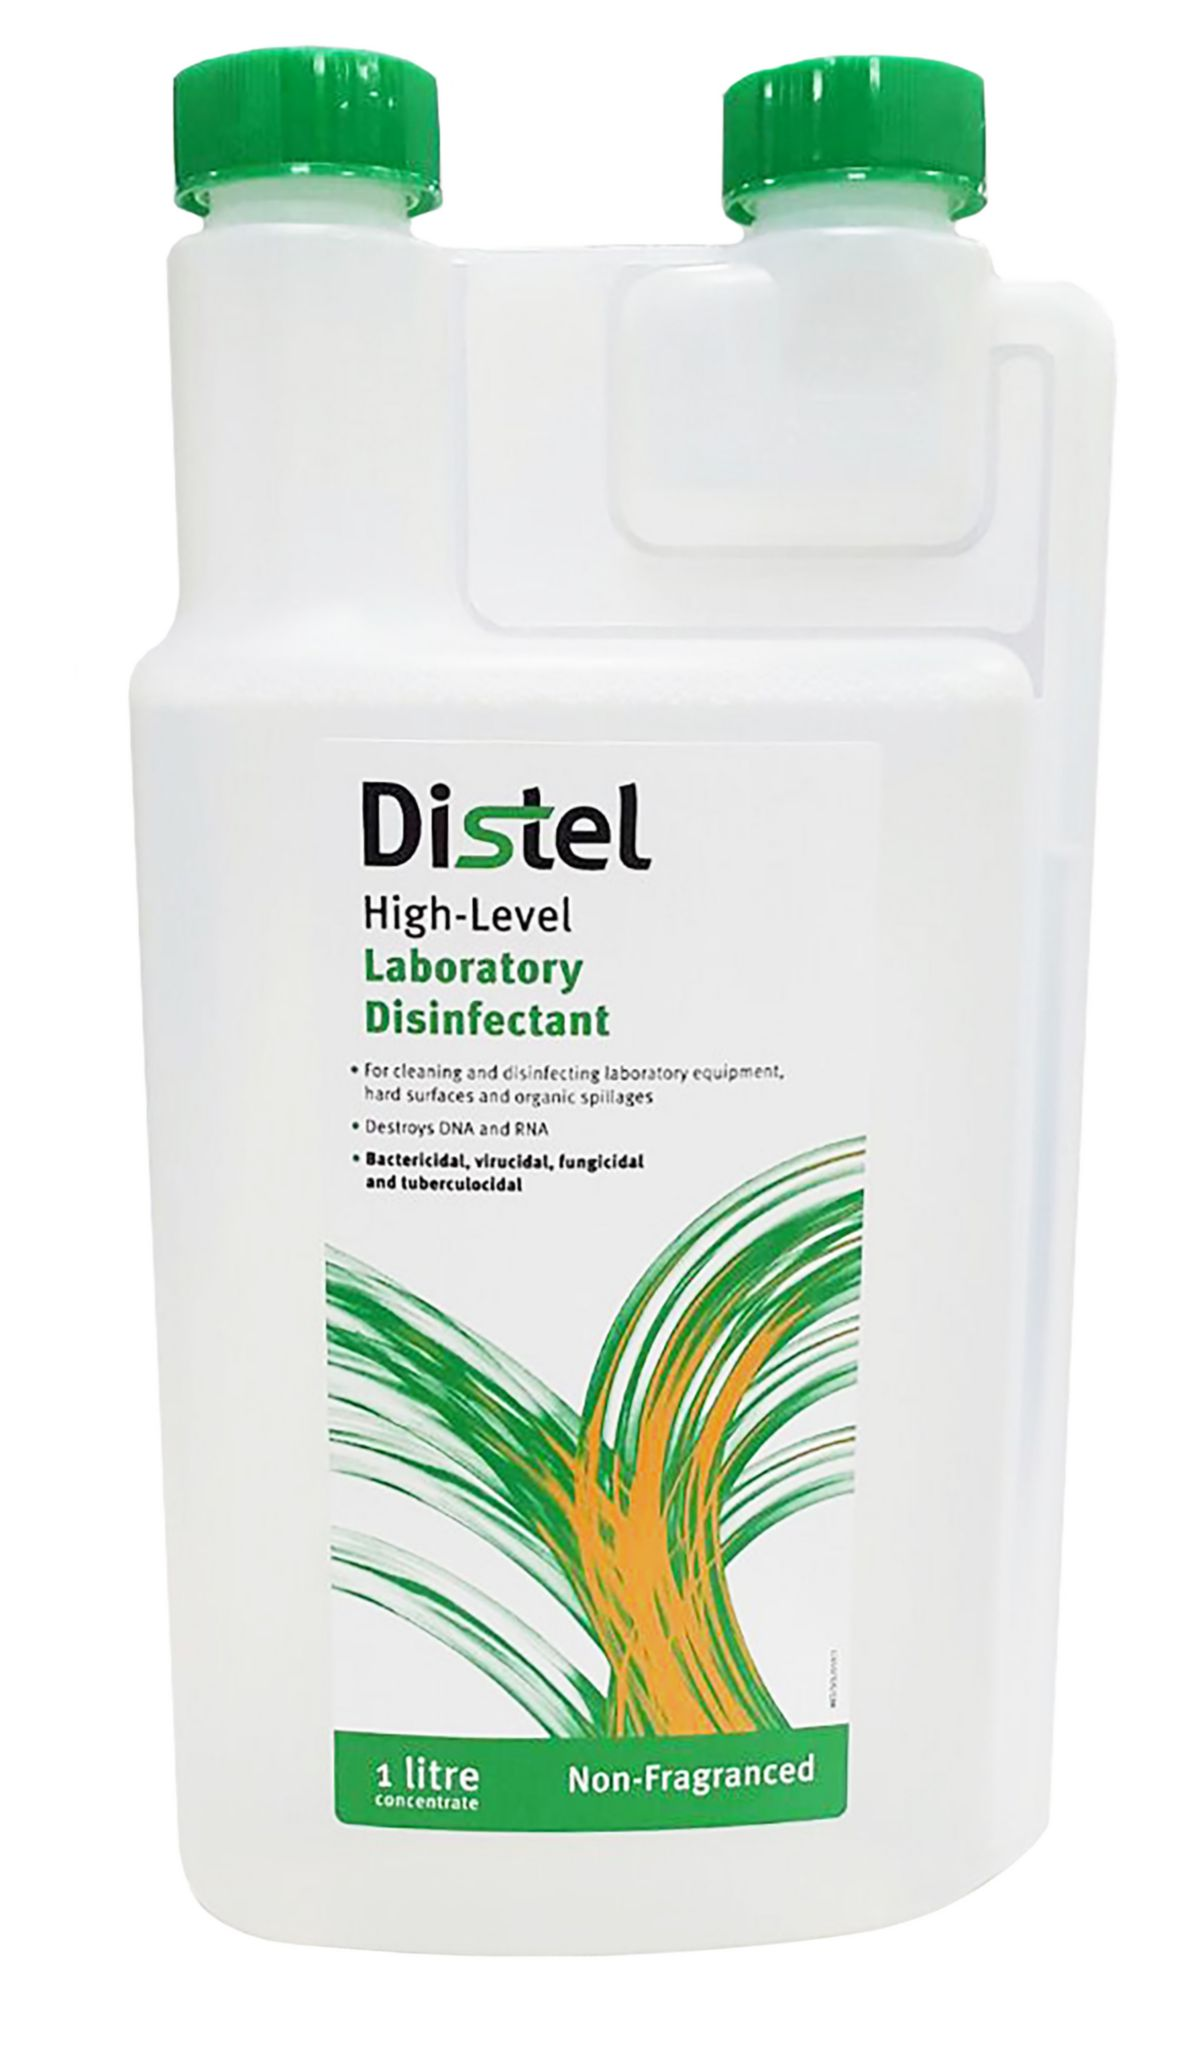 Distel High Level Disinfectant Laboratory Disinfectant